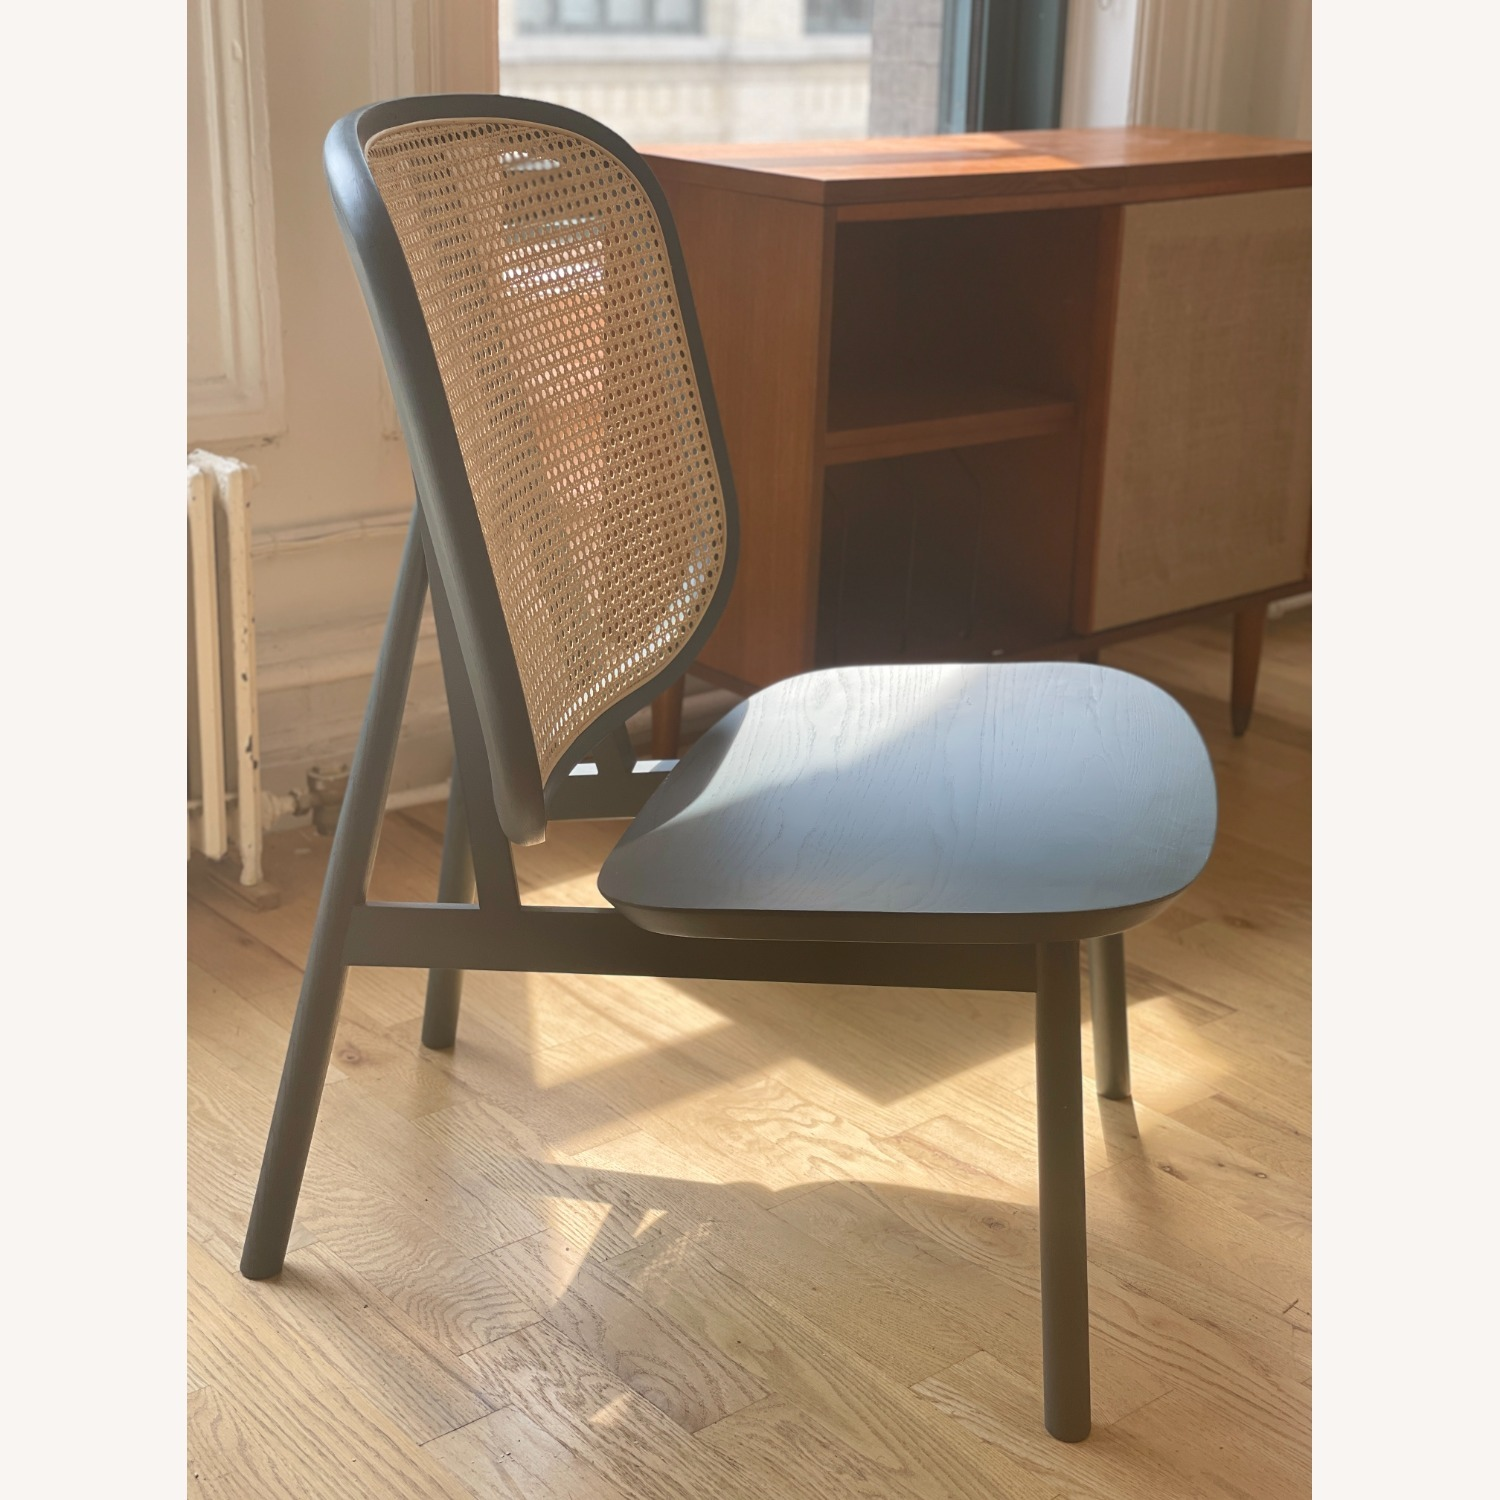 Industry West Blue Caned Accent Chair - image-1